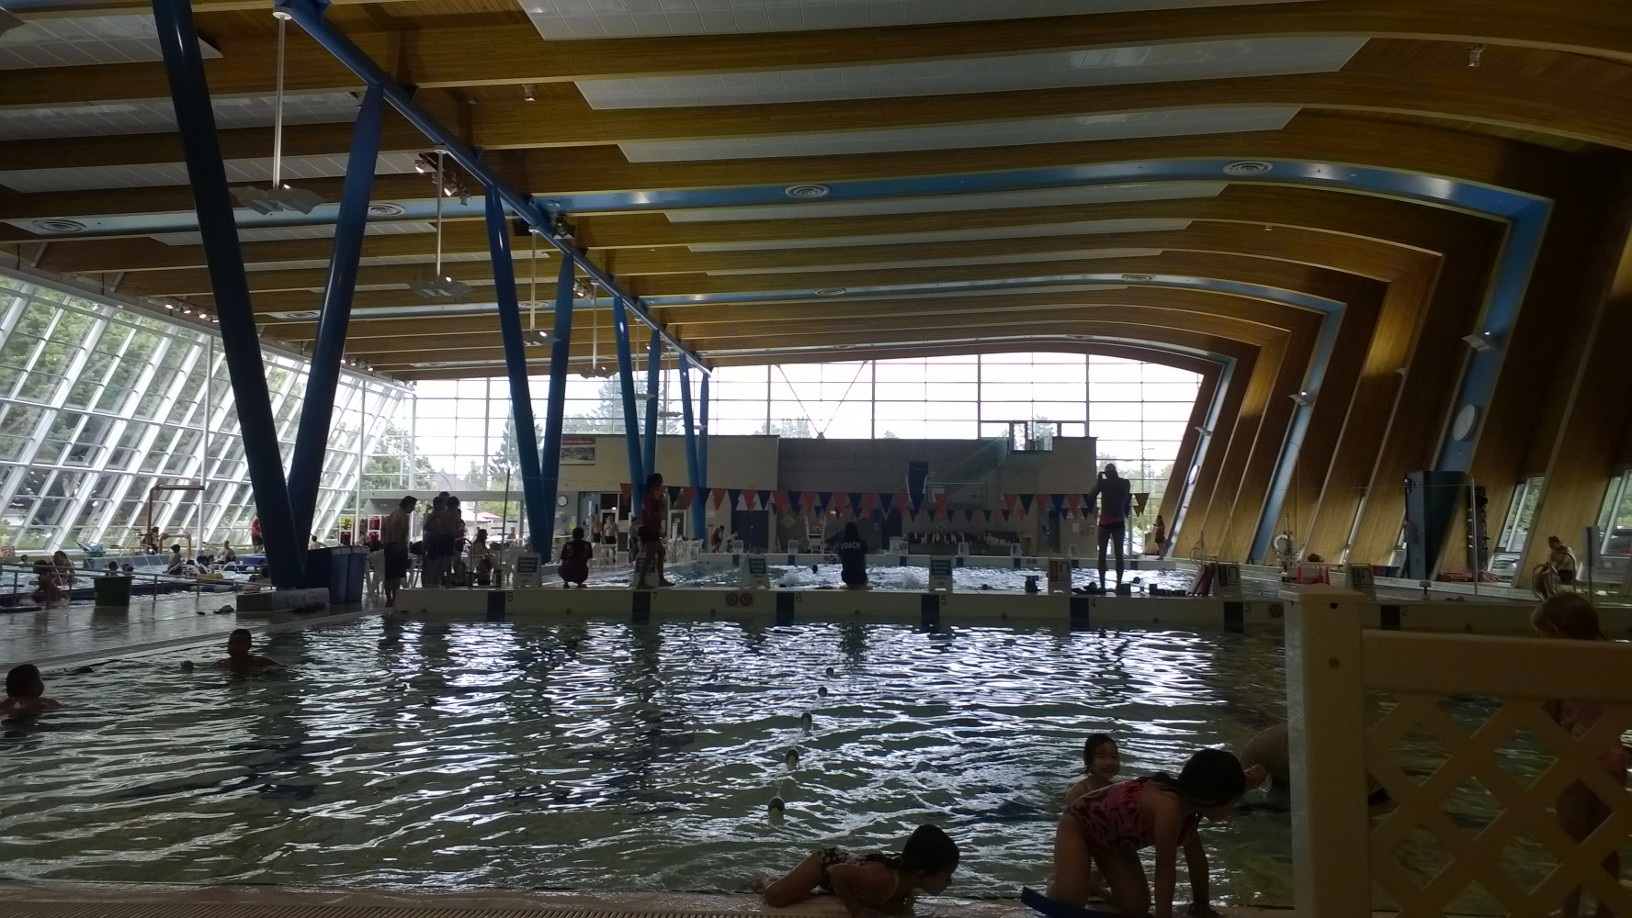 0171 - Hillcrest Aquatic Center (Vancouver)